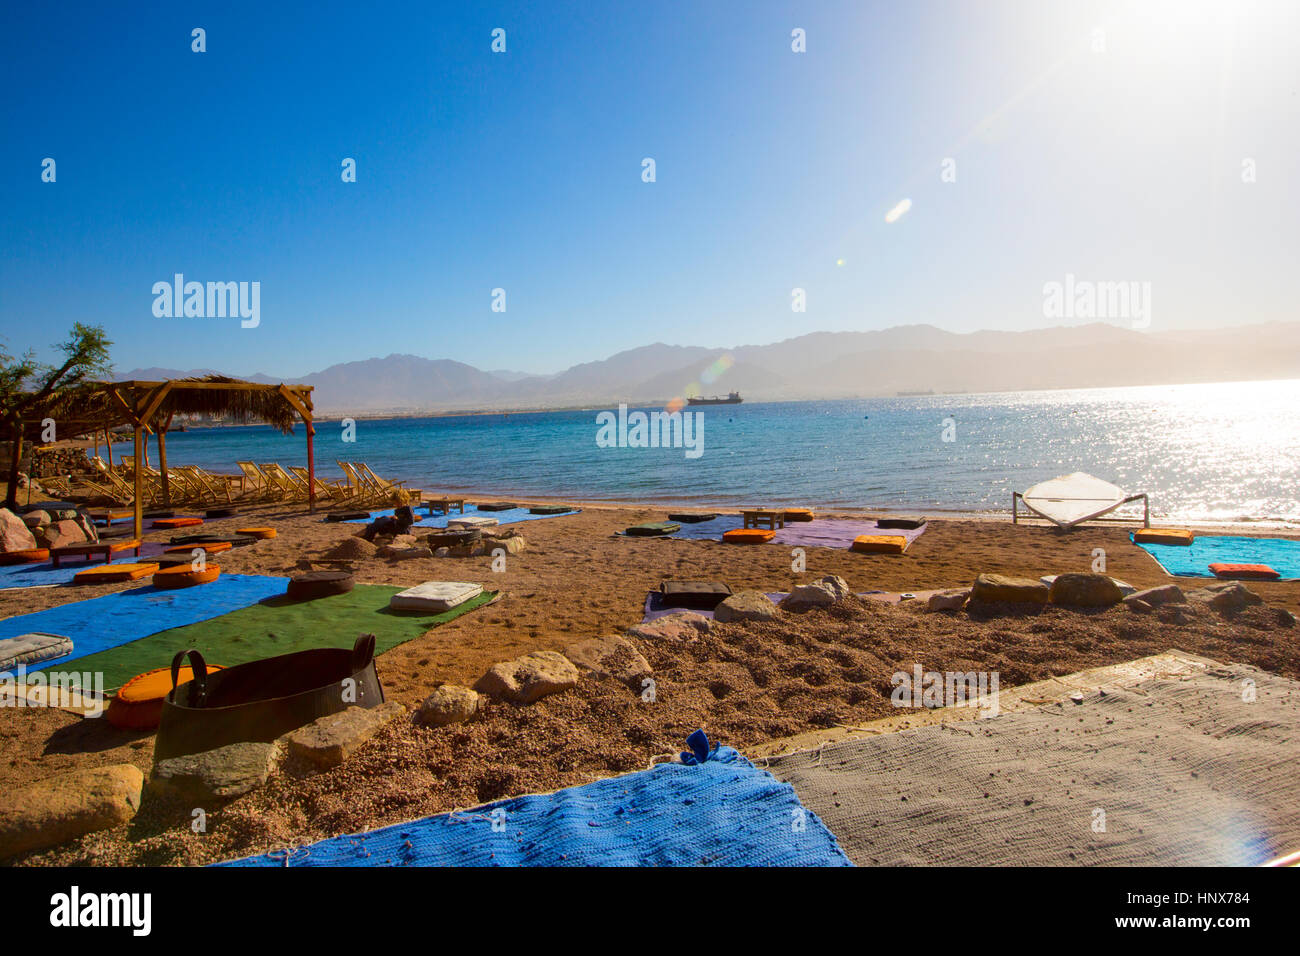 Summer seaside holiday concept, Red Sea, Israel Stock Photo